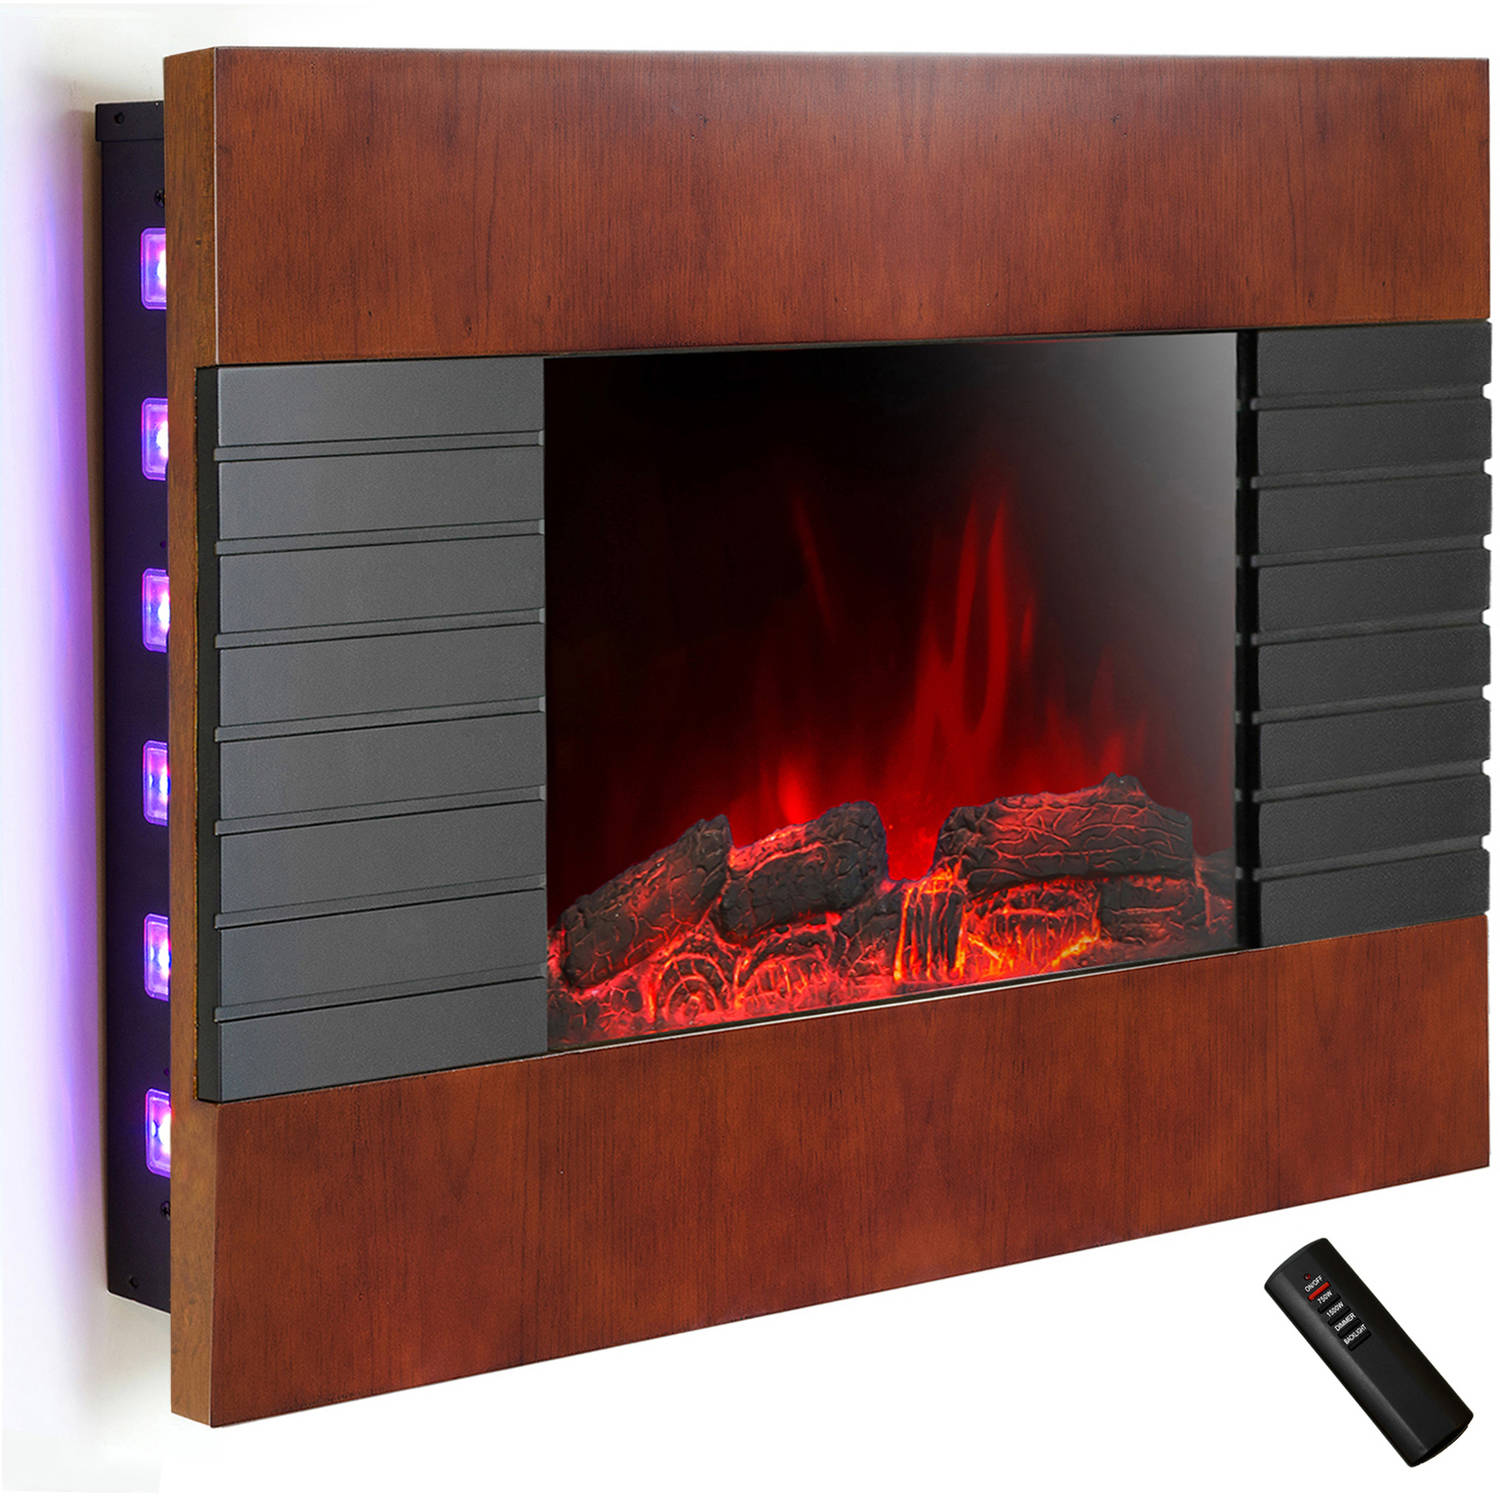 "AKDY FP0049 36"" 1500W Wall Mount Electric Fireplace Heater with Tempered Glass, Pebbles, Logs and Remote Control, Brown"